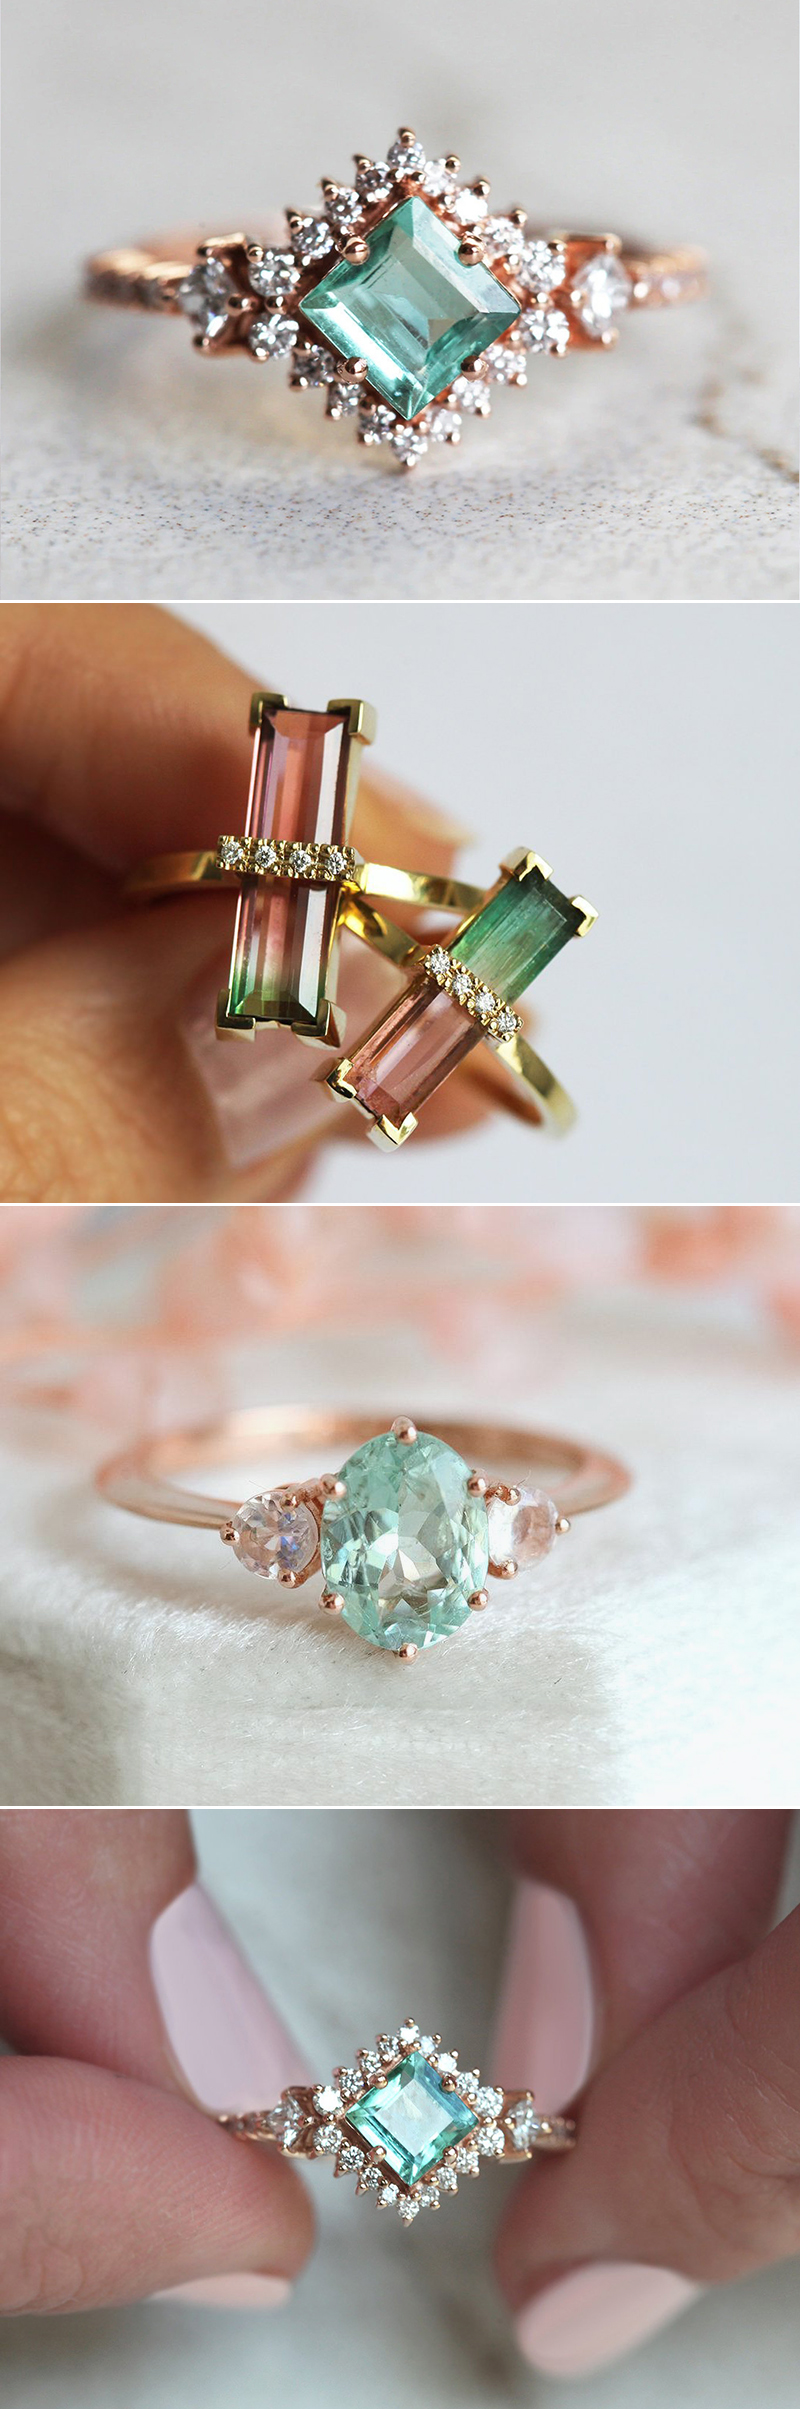 colored stone gemstone engagement ring